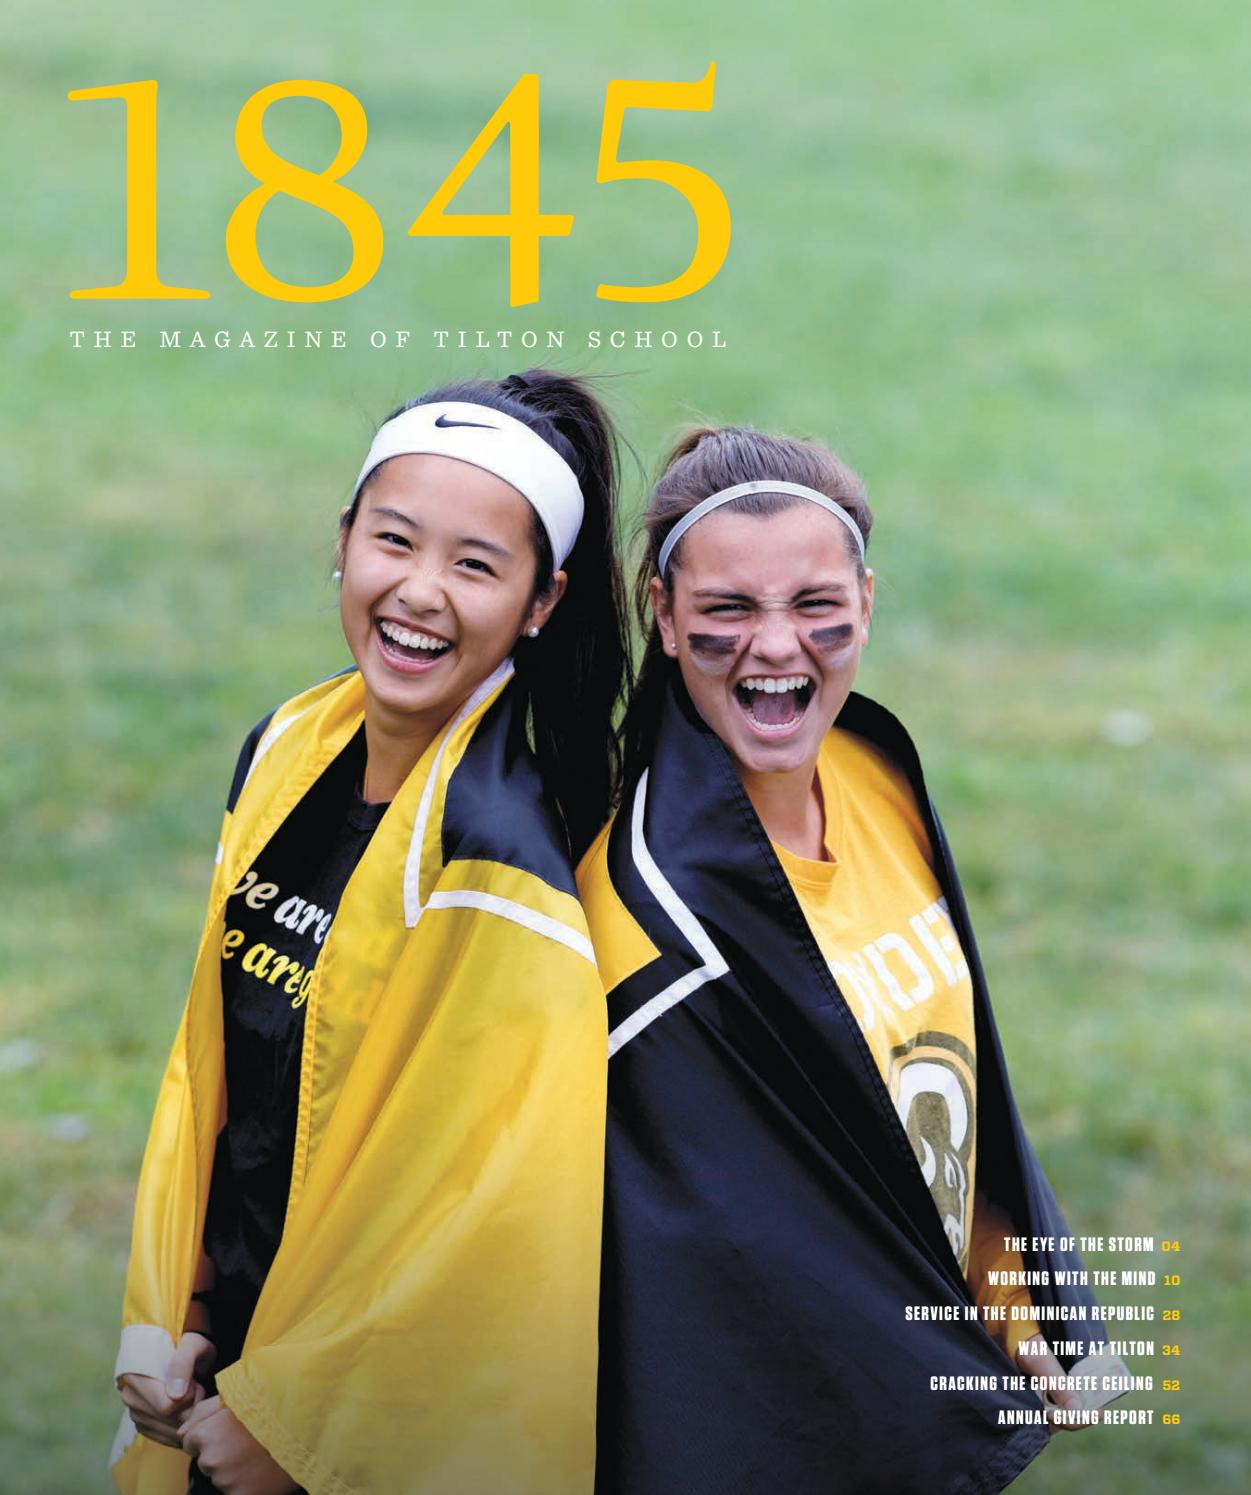 1845 | The Magazine of Tilton School by Tilton School - issuu